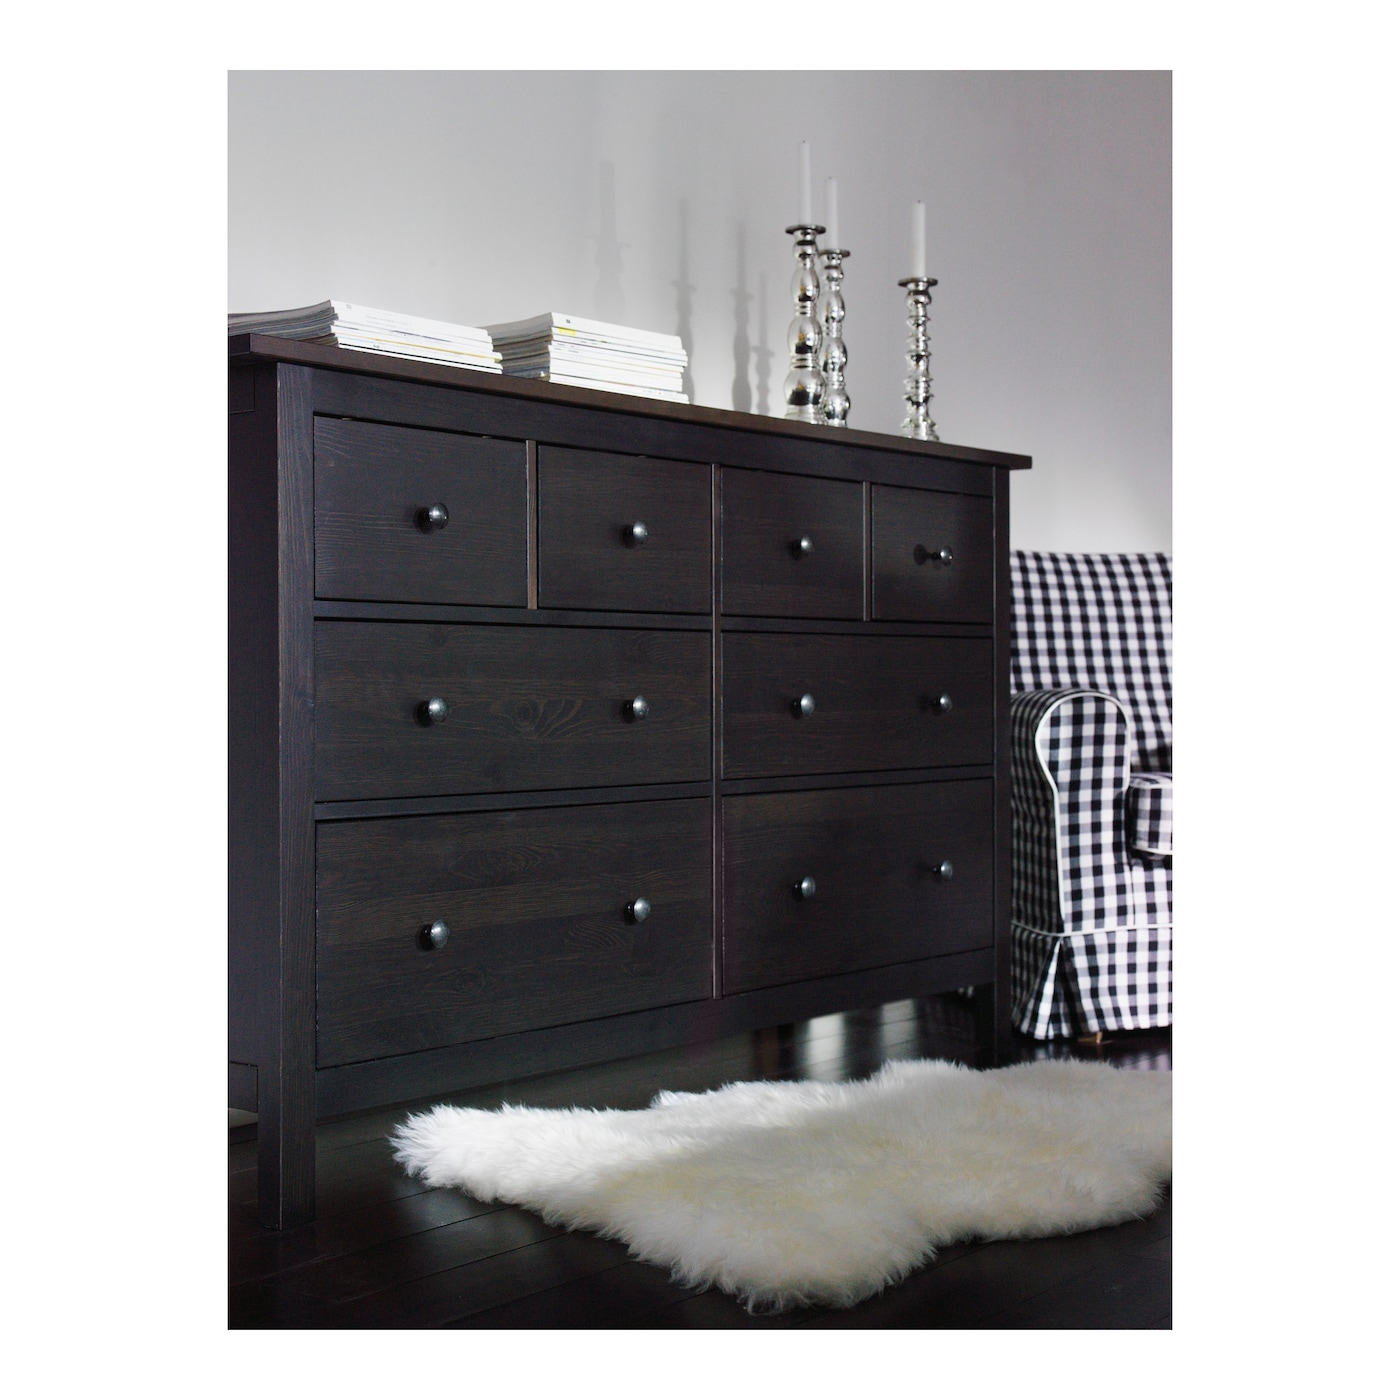 Hemnes chest of 8 drawers black brown 160 x 96 cm ikea - Hemnes cassettiera ikea ...